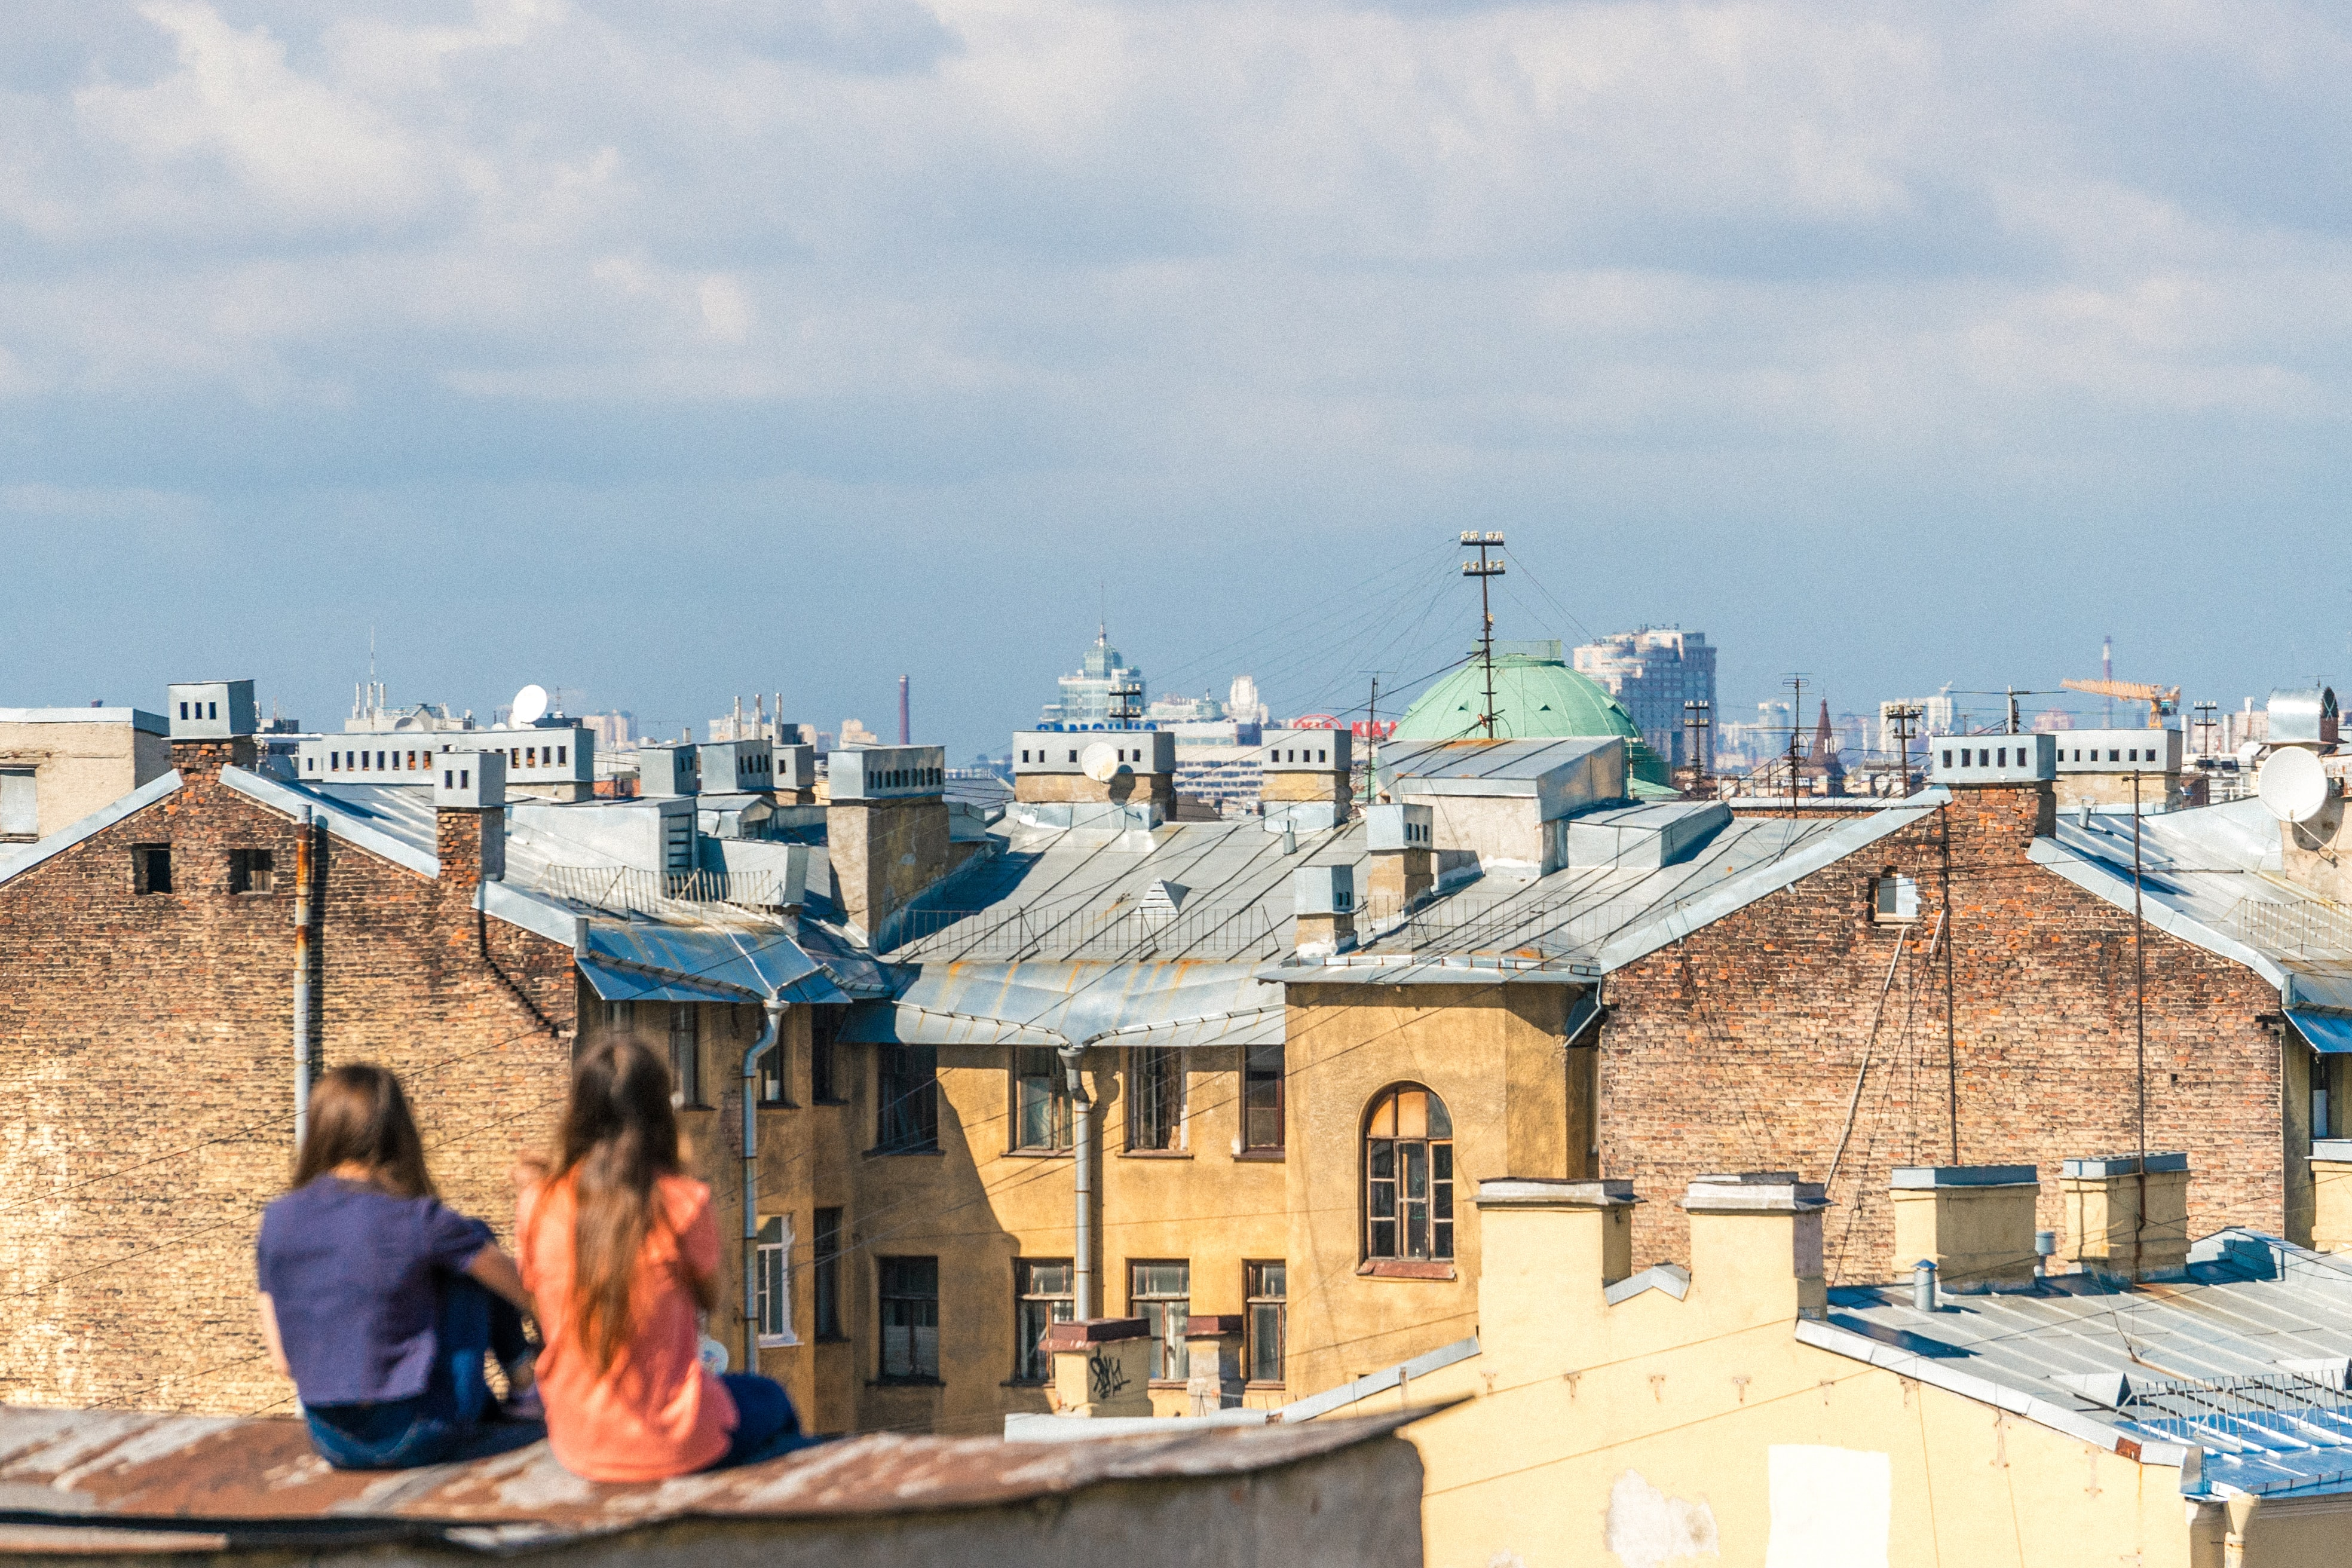 two women sitting on roof overlooking building during daytime